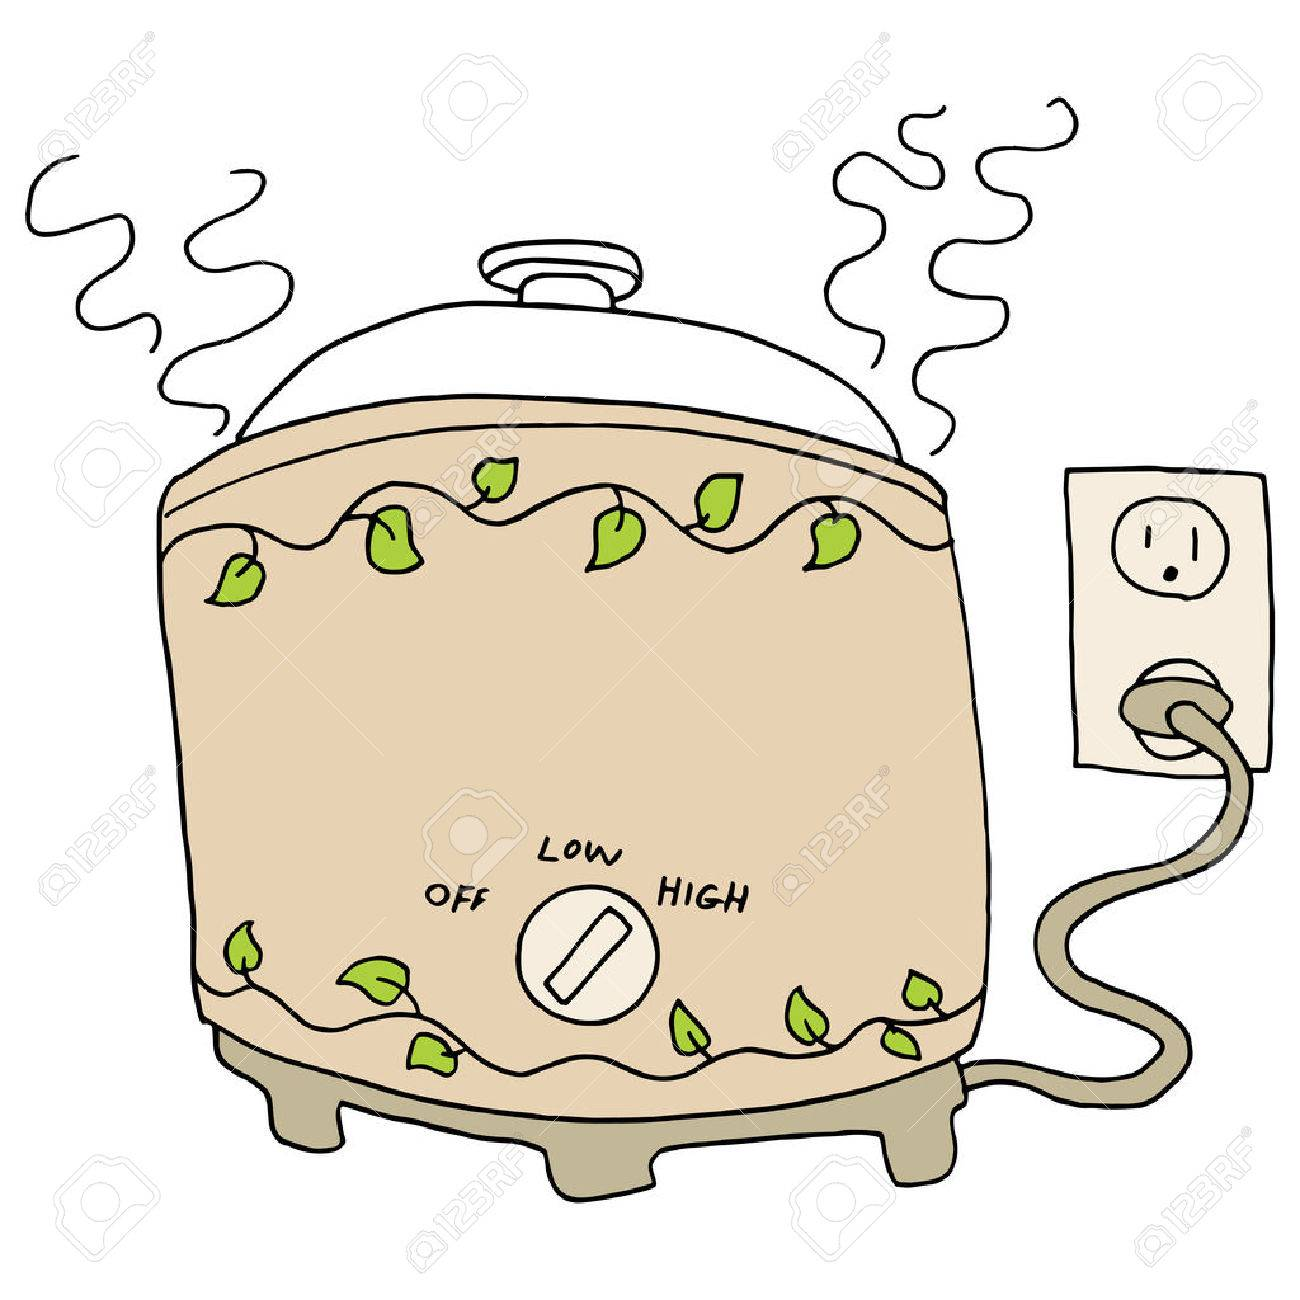 An image of a slow cooker pot. - 27363640